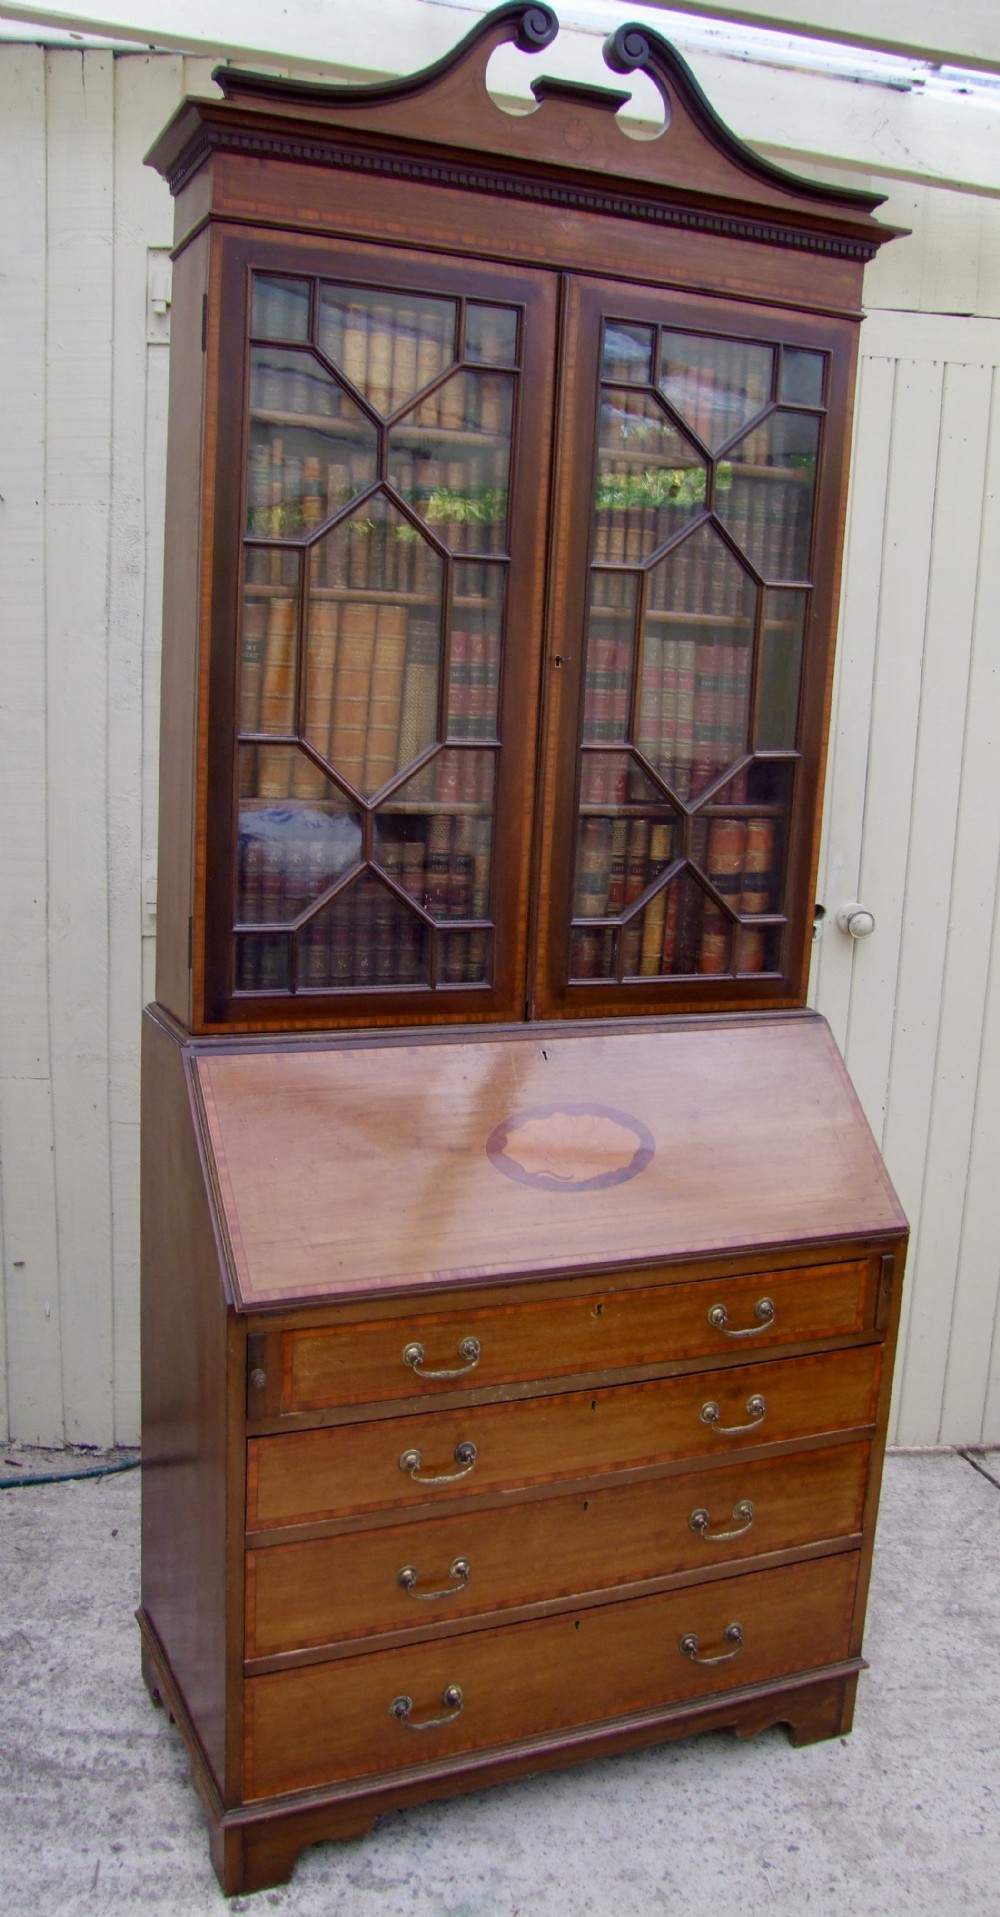 pretty late 19th century bureau bookcase in mahogany with satinwood cross banding and inlay